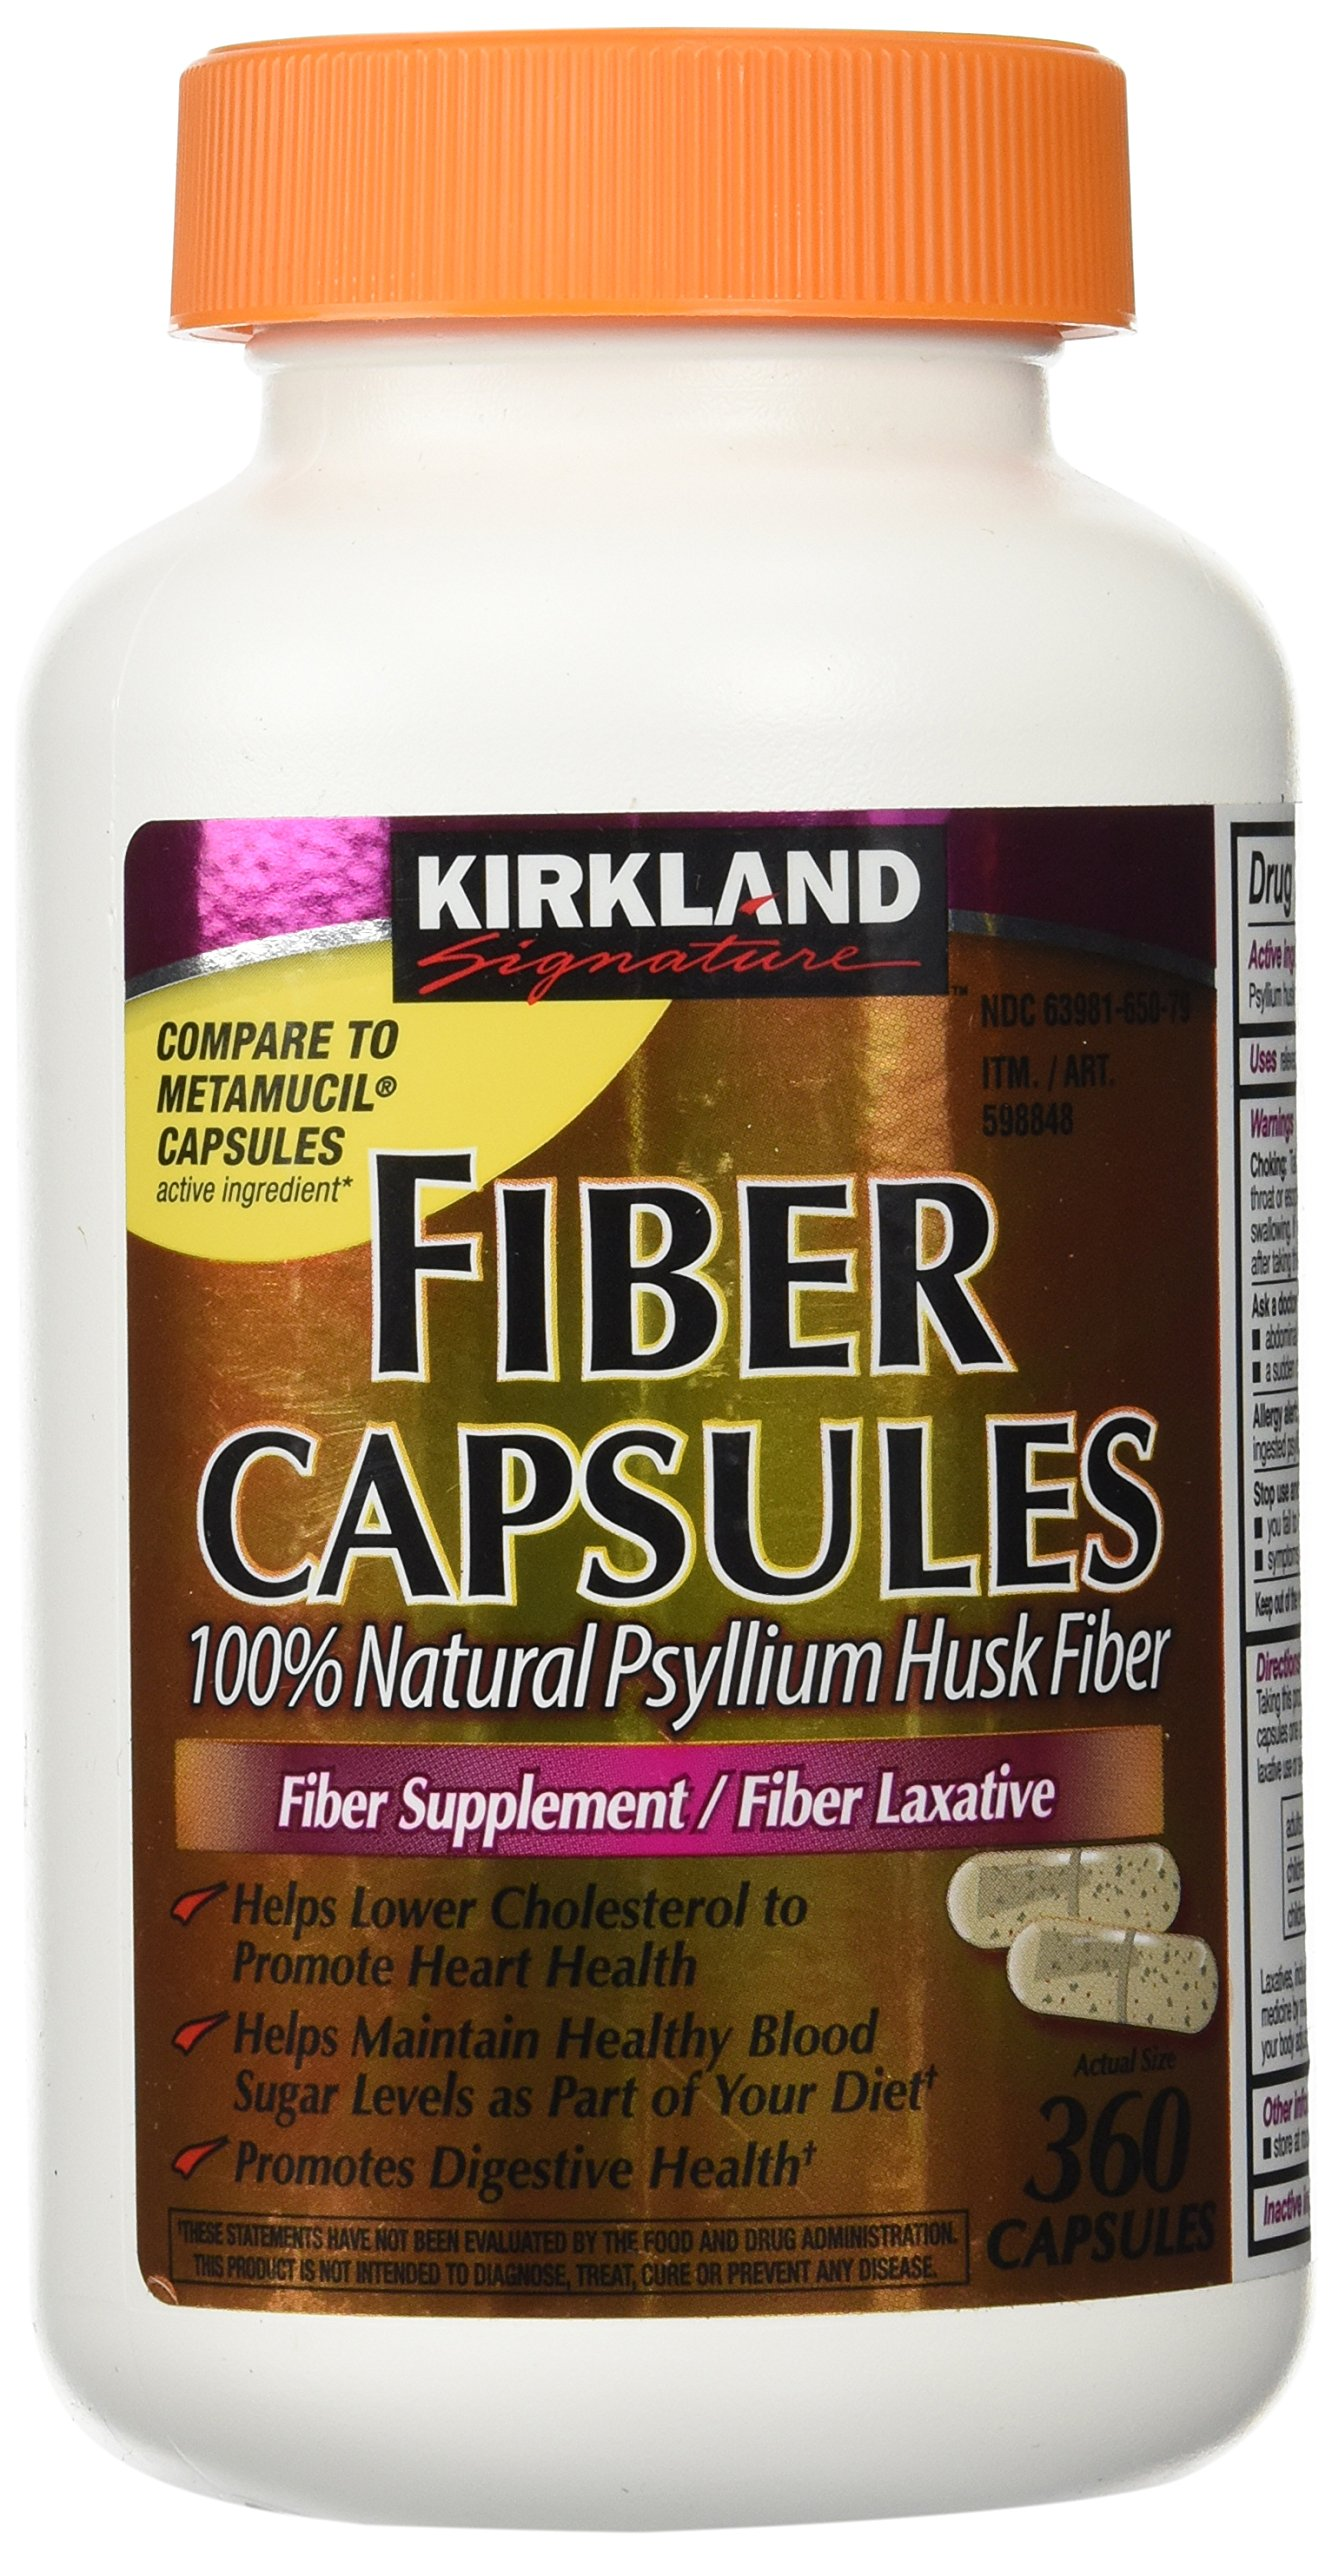 Fiber Capsules Kirkland Therapy for Regularity/Fiber Supplement, 360 capsules - Compare to the Active Ingredient in Metamucil Capsules by Kirkland Signature